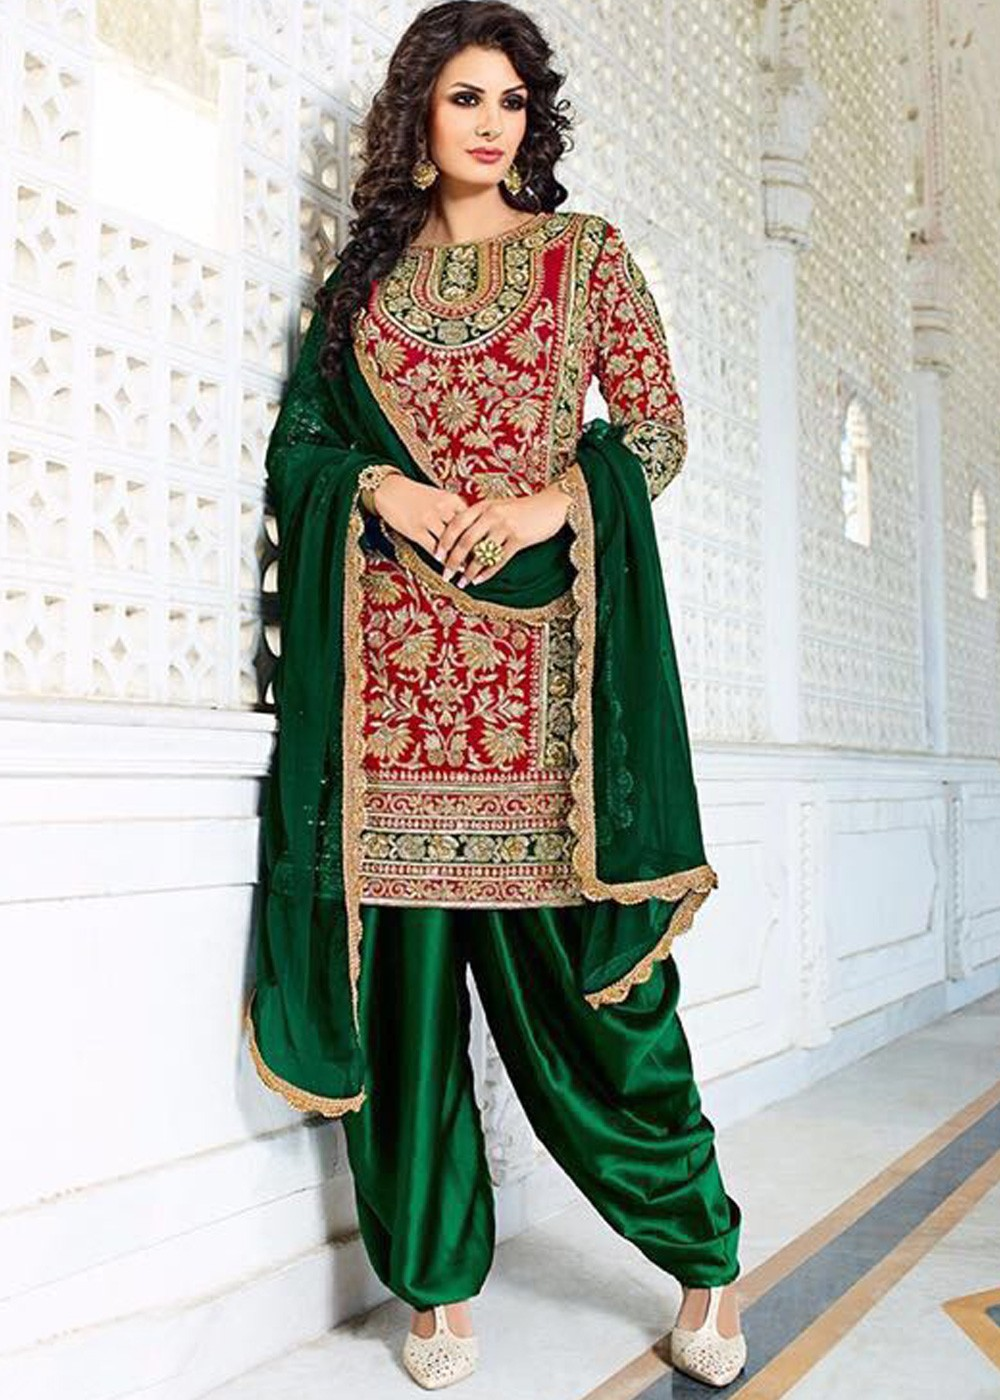 67a2b268af2 Bridal Salwar Kameez - Buy Red Patiyala Bridal Salwar Kameez Online UK ...